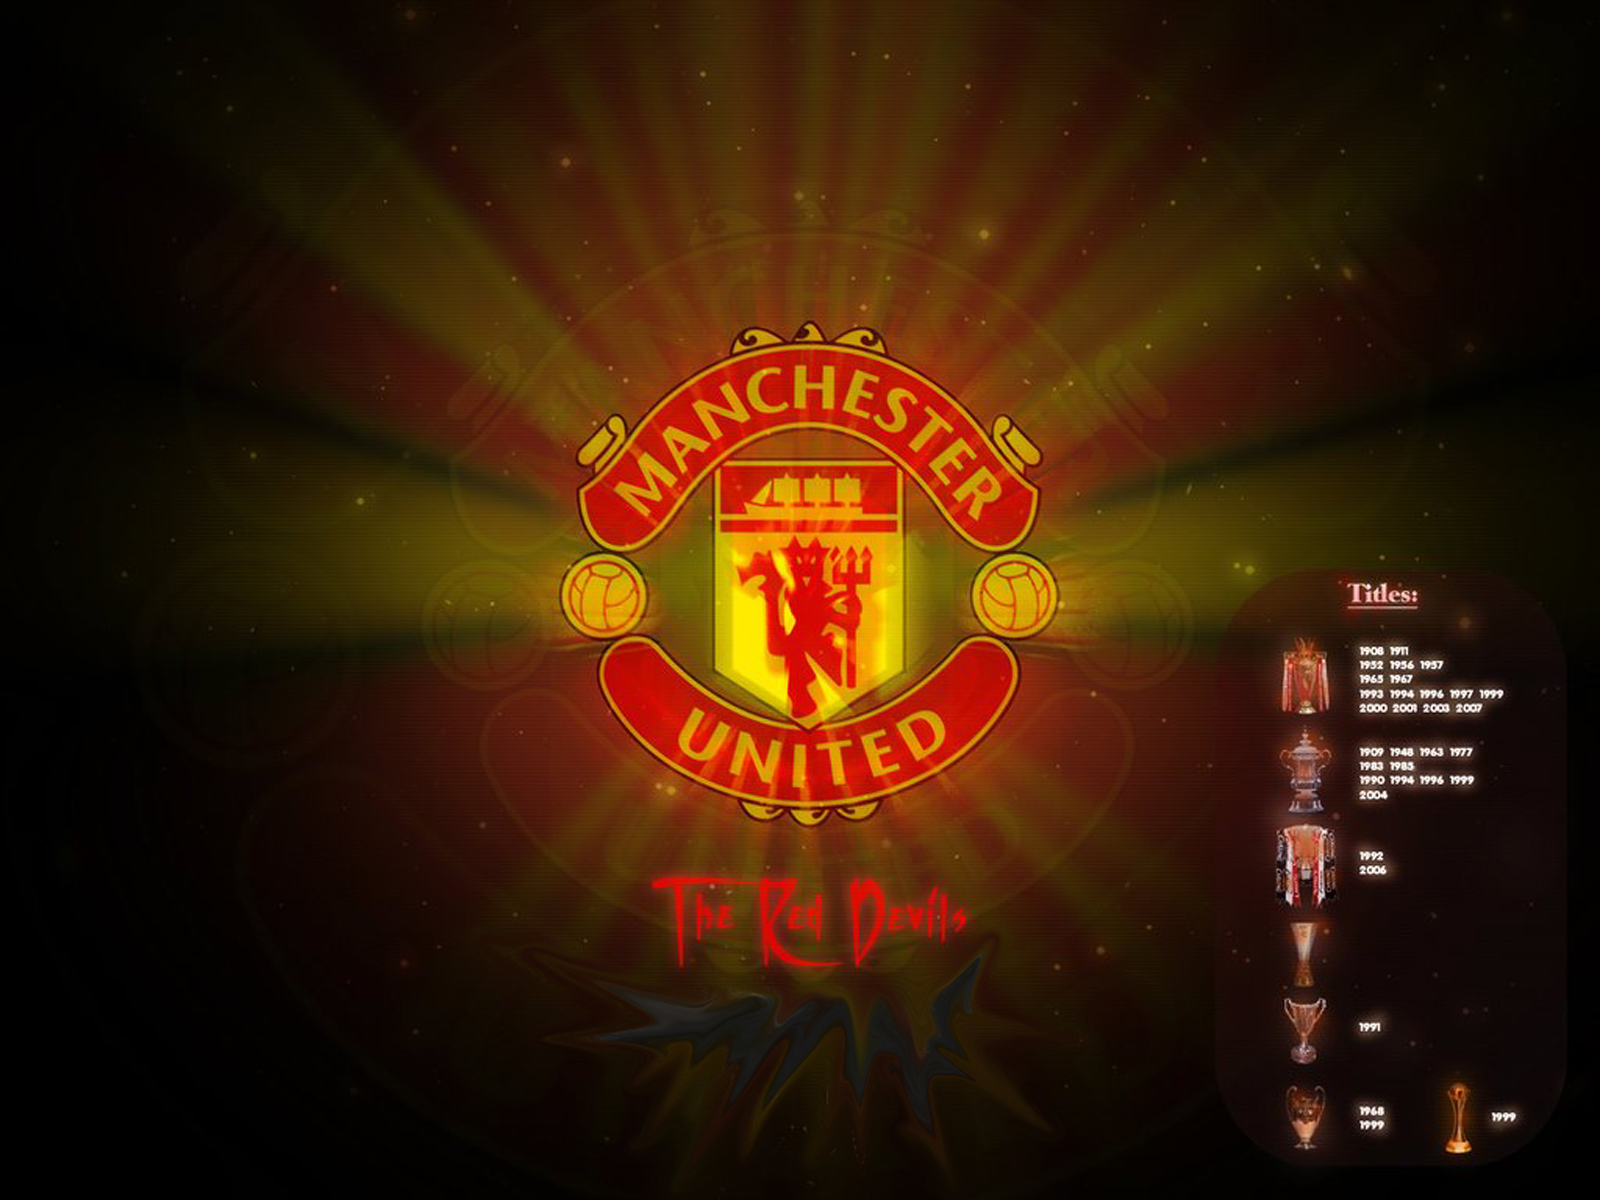 Football Updates Fantasy Games Best of Machester United Wallpapers 1600x1200